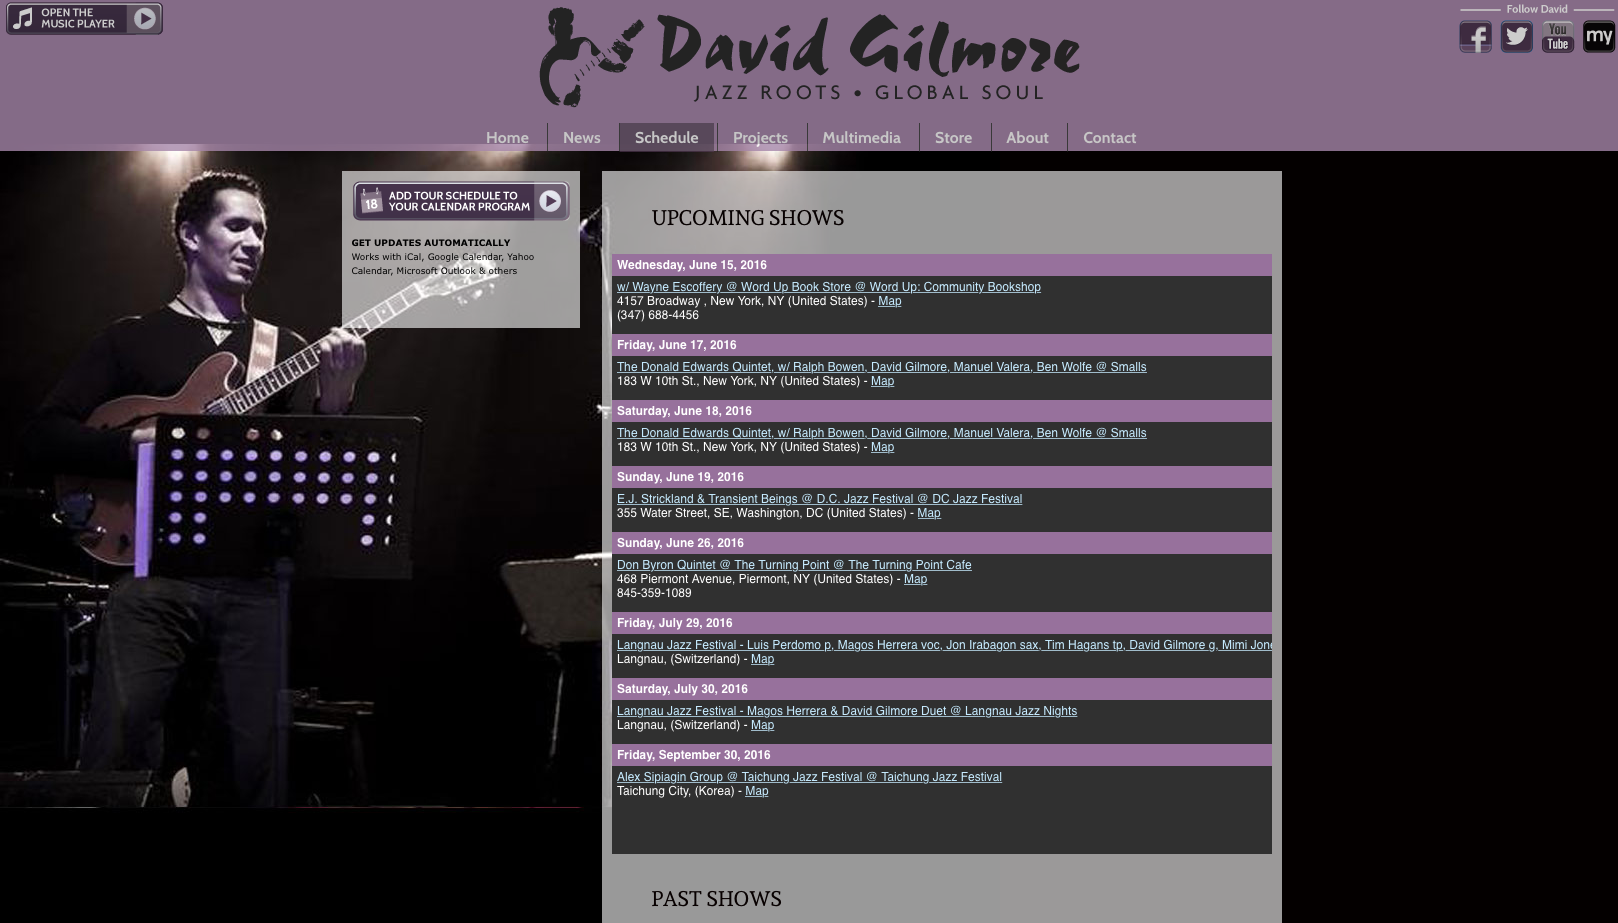 Divid Gilmore Events